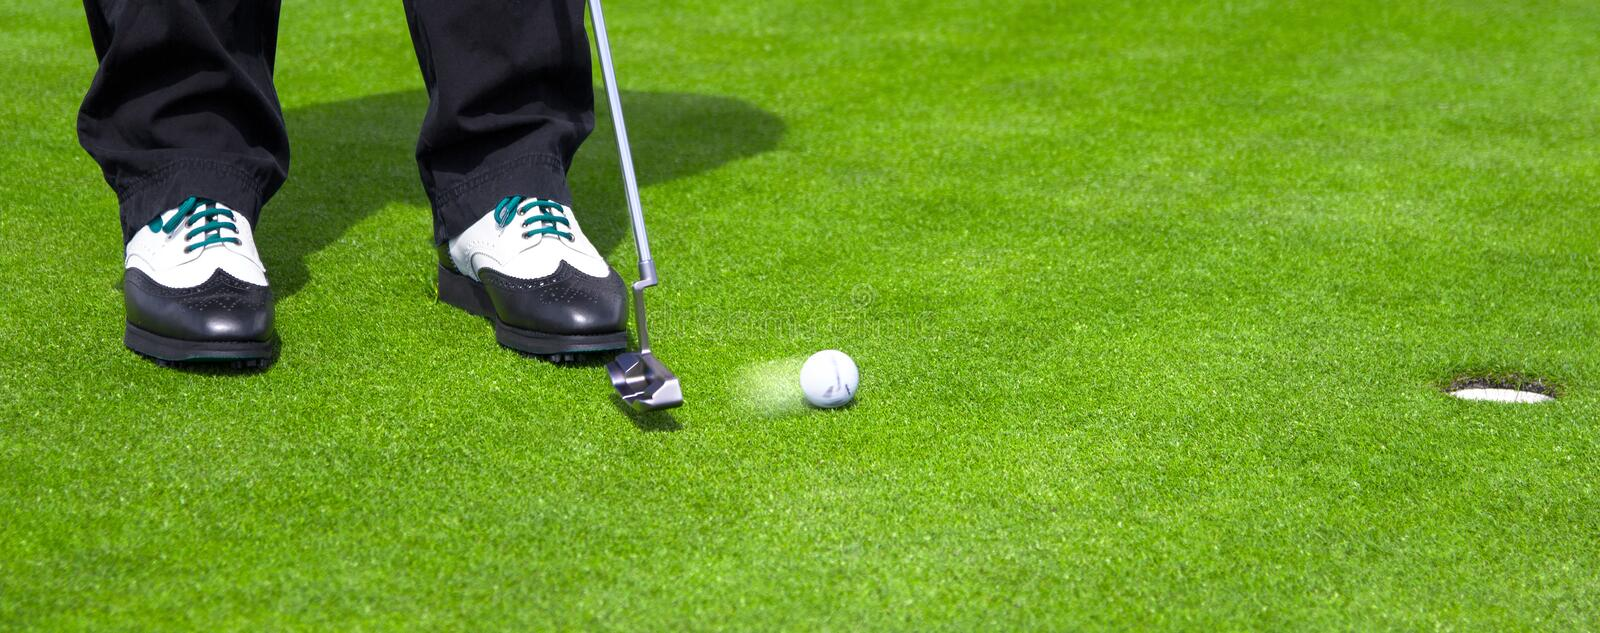 Golf Putt royalty free stock photography